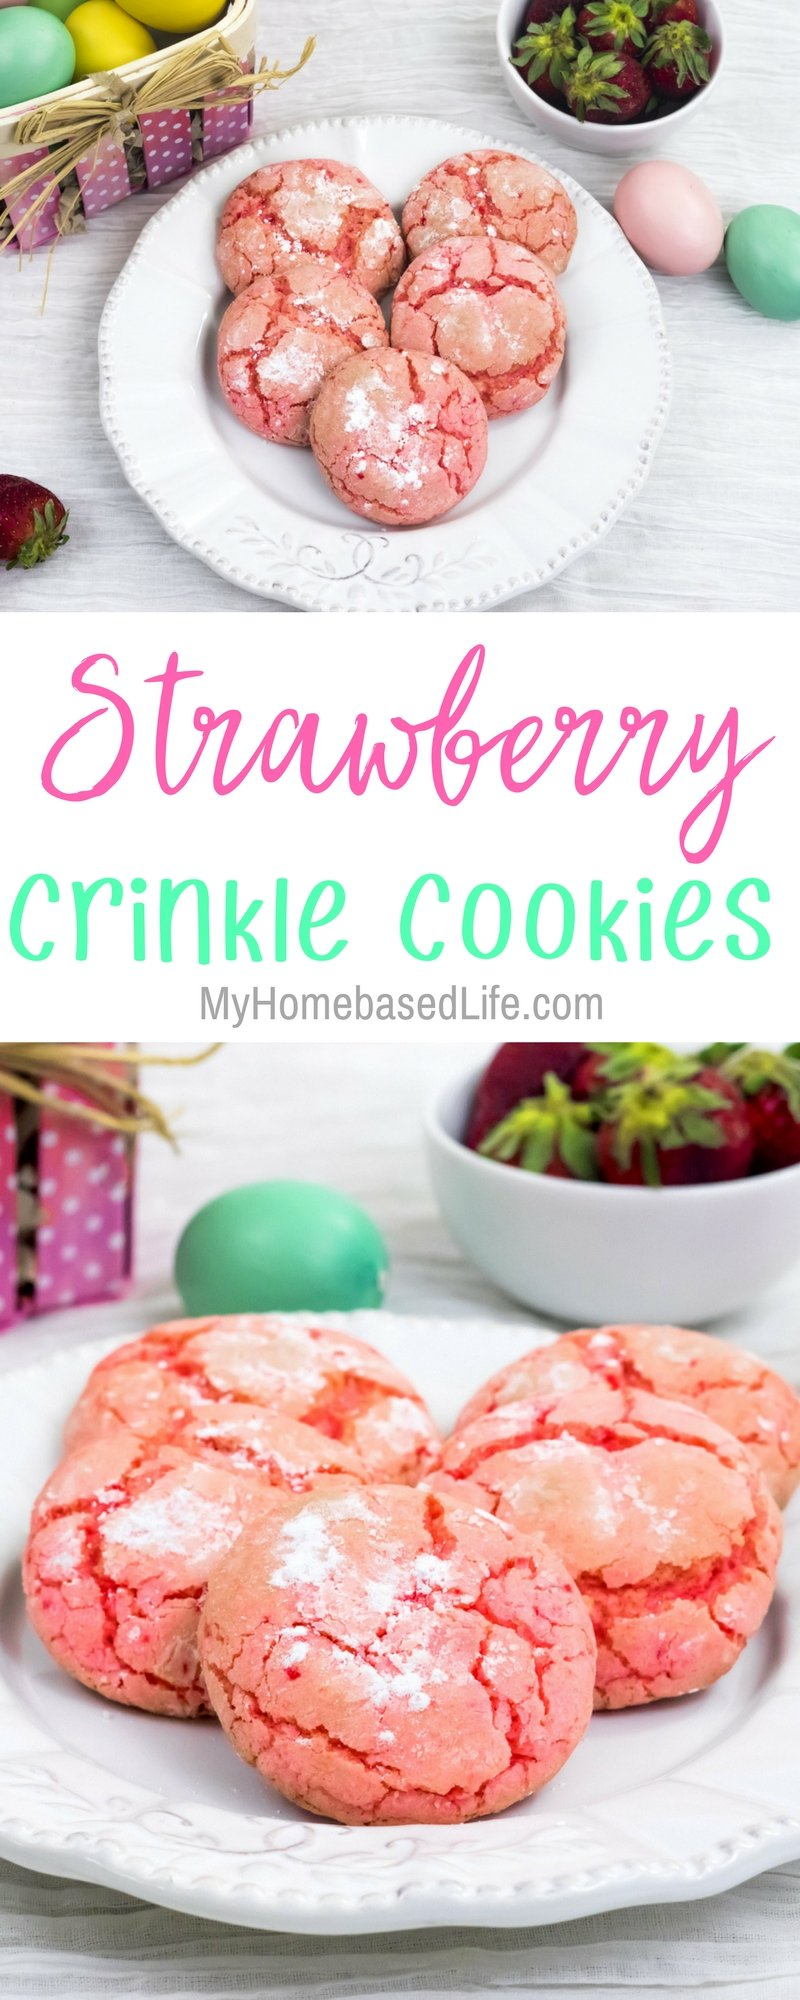 Strawberry Crinkle Cookies are so versatile for the seasons and everyone loves them! let the kids make dessert this time with this recipe. #recipe #cookies #strawberry #desserts #myhomebasedlife | Cookie Recipe | Strawberry Recipe | Easter Cookies | Valentine's Day Cookies